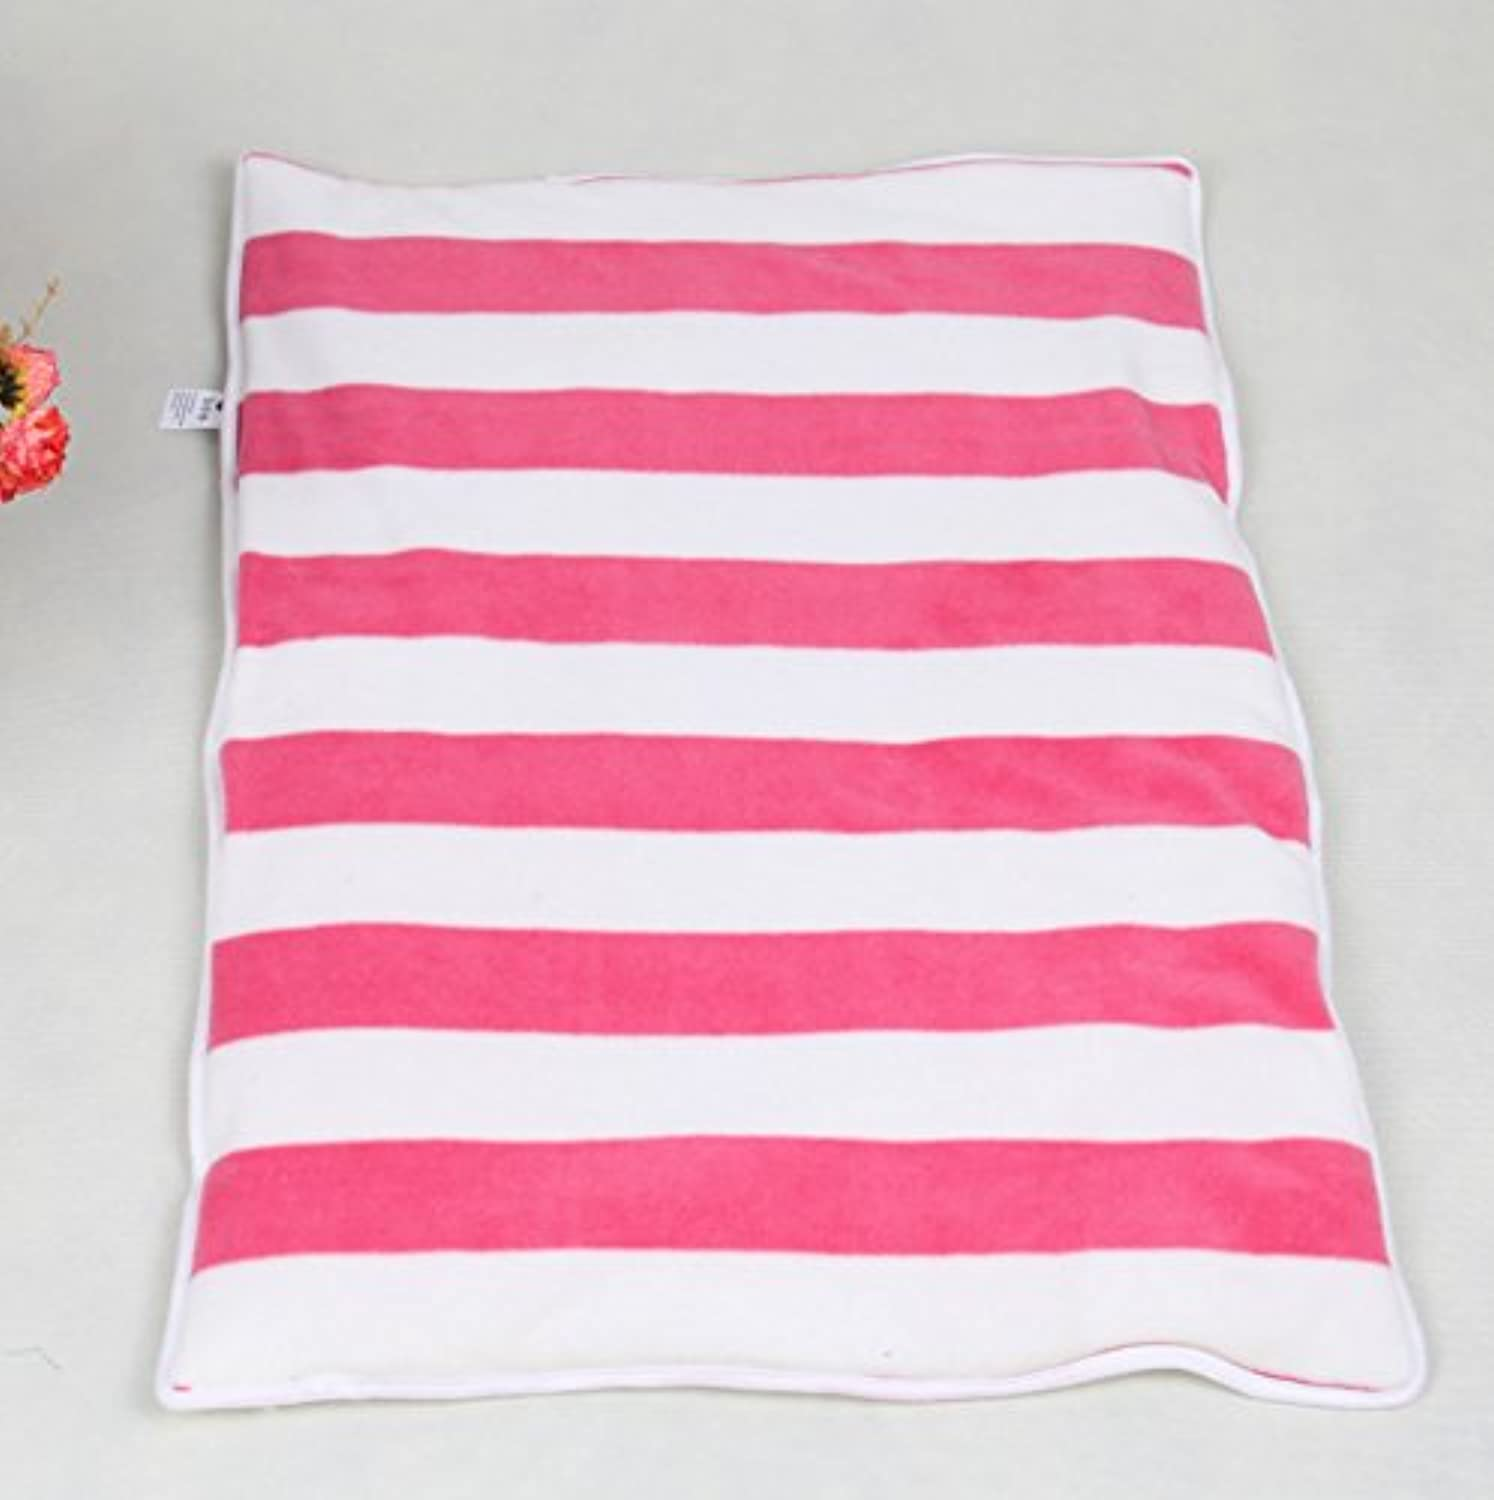 Small Small Small Quilts multifunctional pet pet supplies,B 70100cm